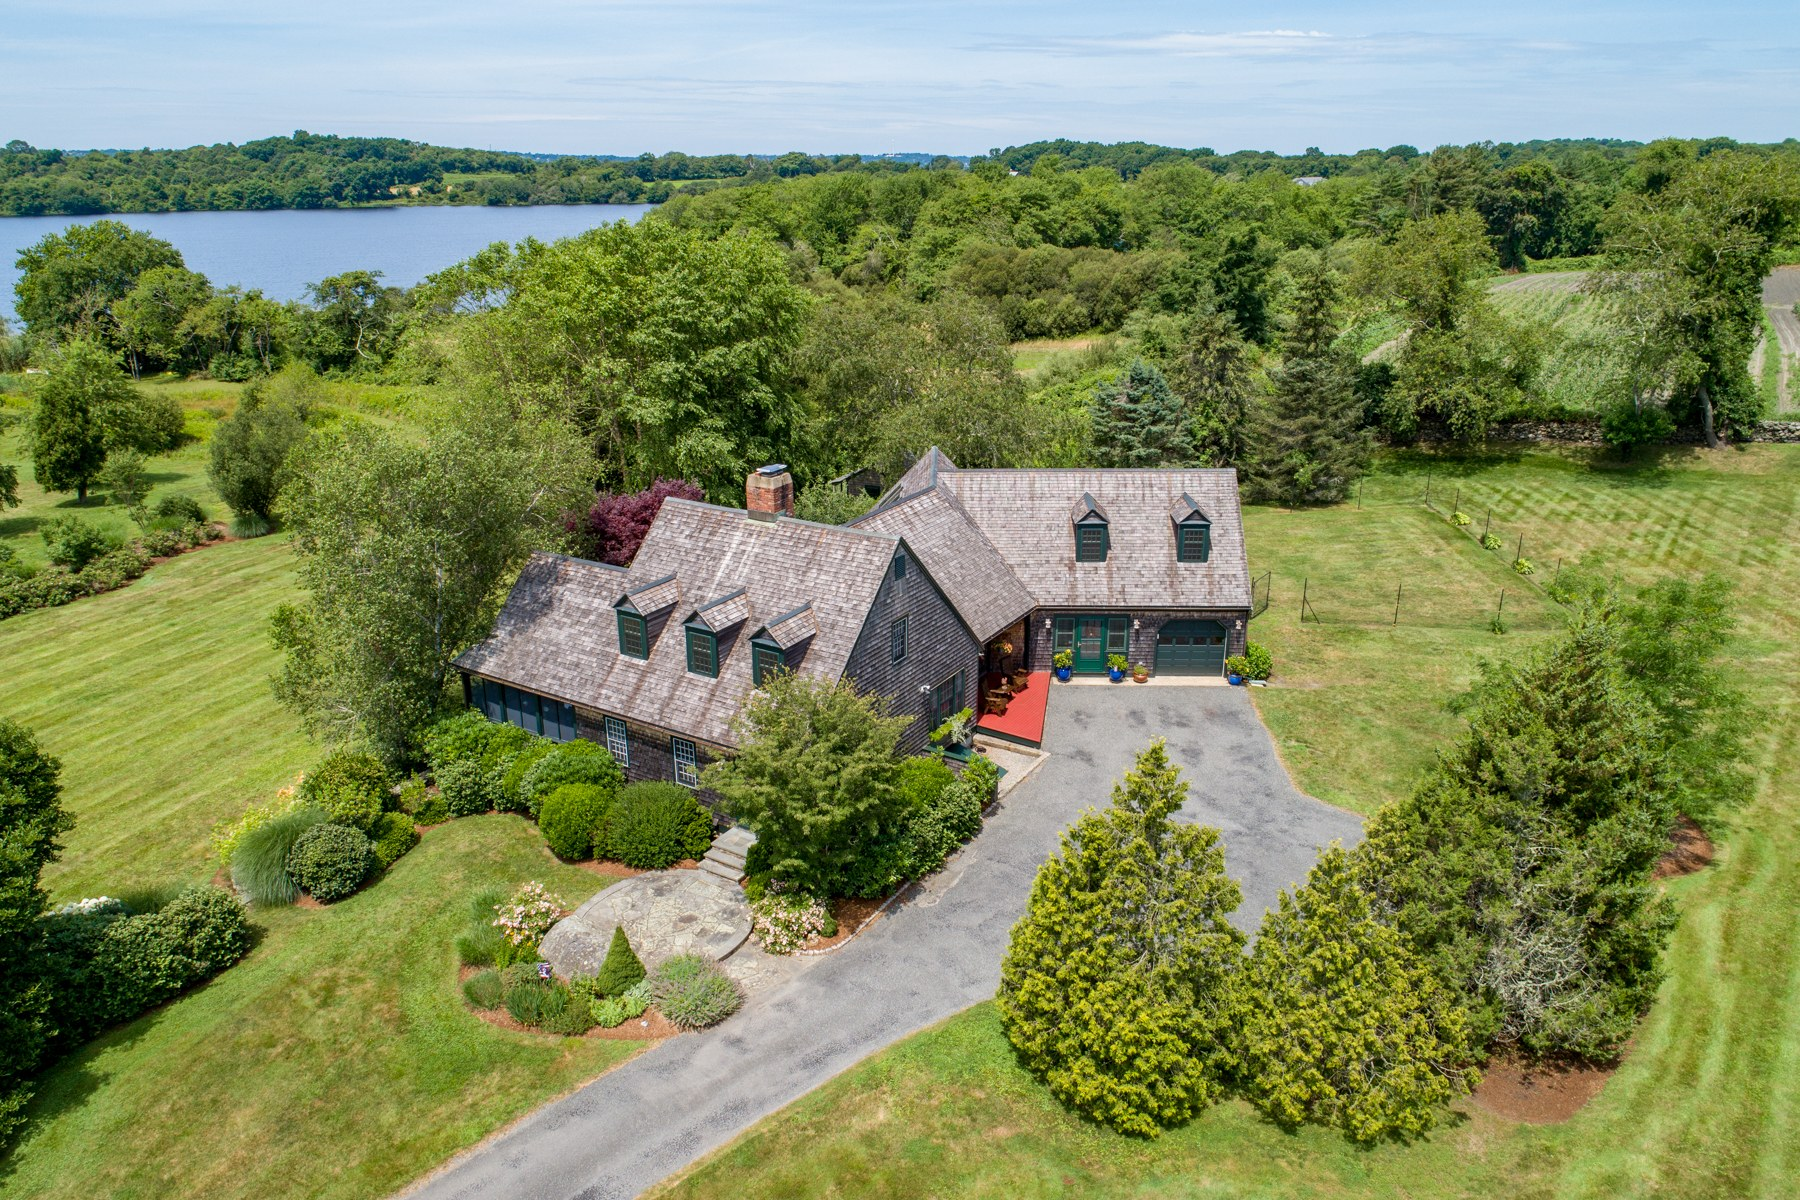 Single Family Homes for Sale at 55 Peaceful Way, Tiverton, RI 55 Peaceful Way Tiverton, Rhode Island 02878 United States